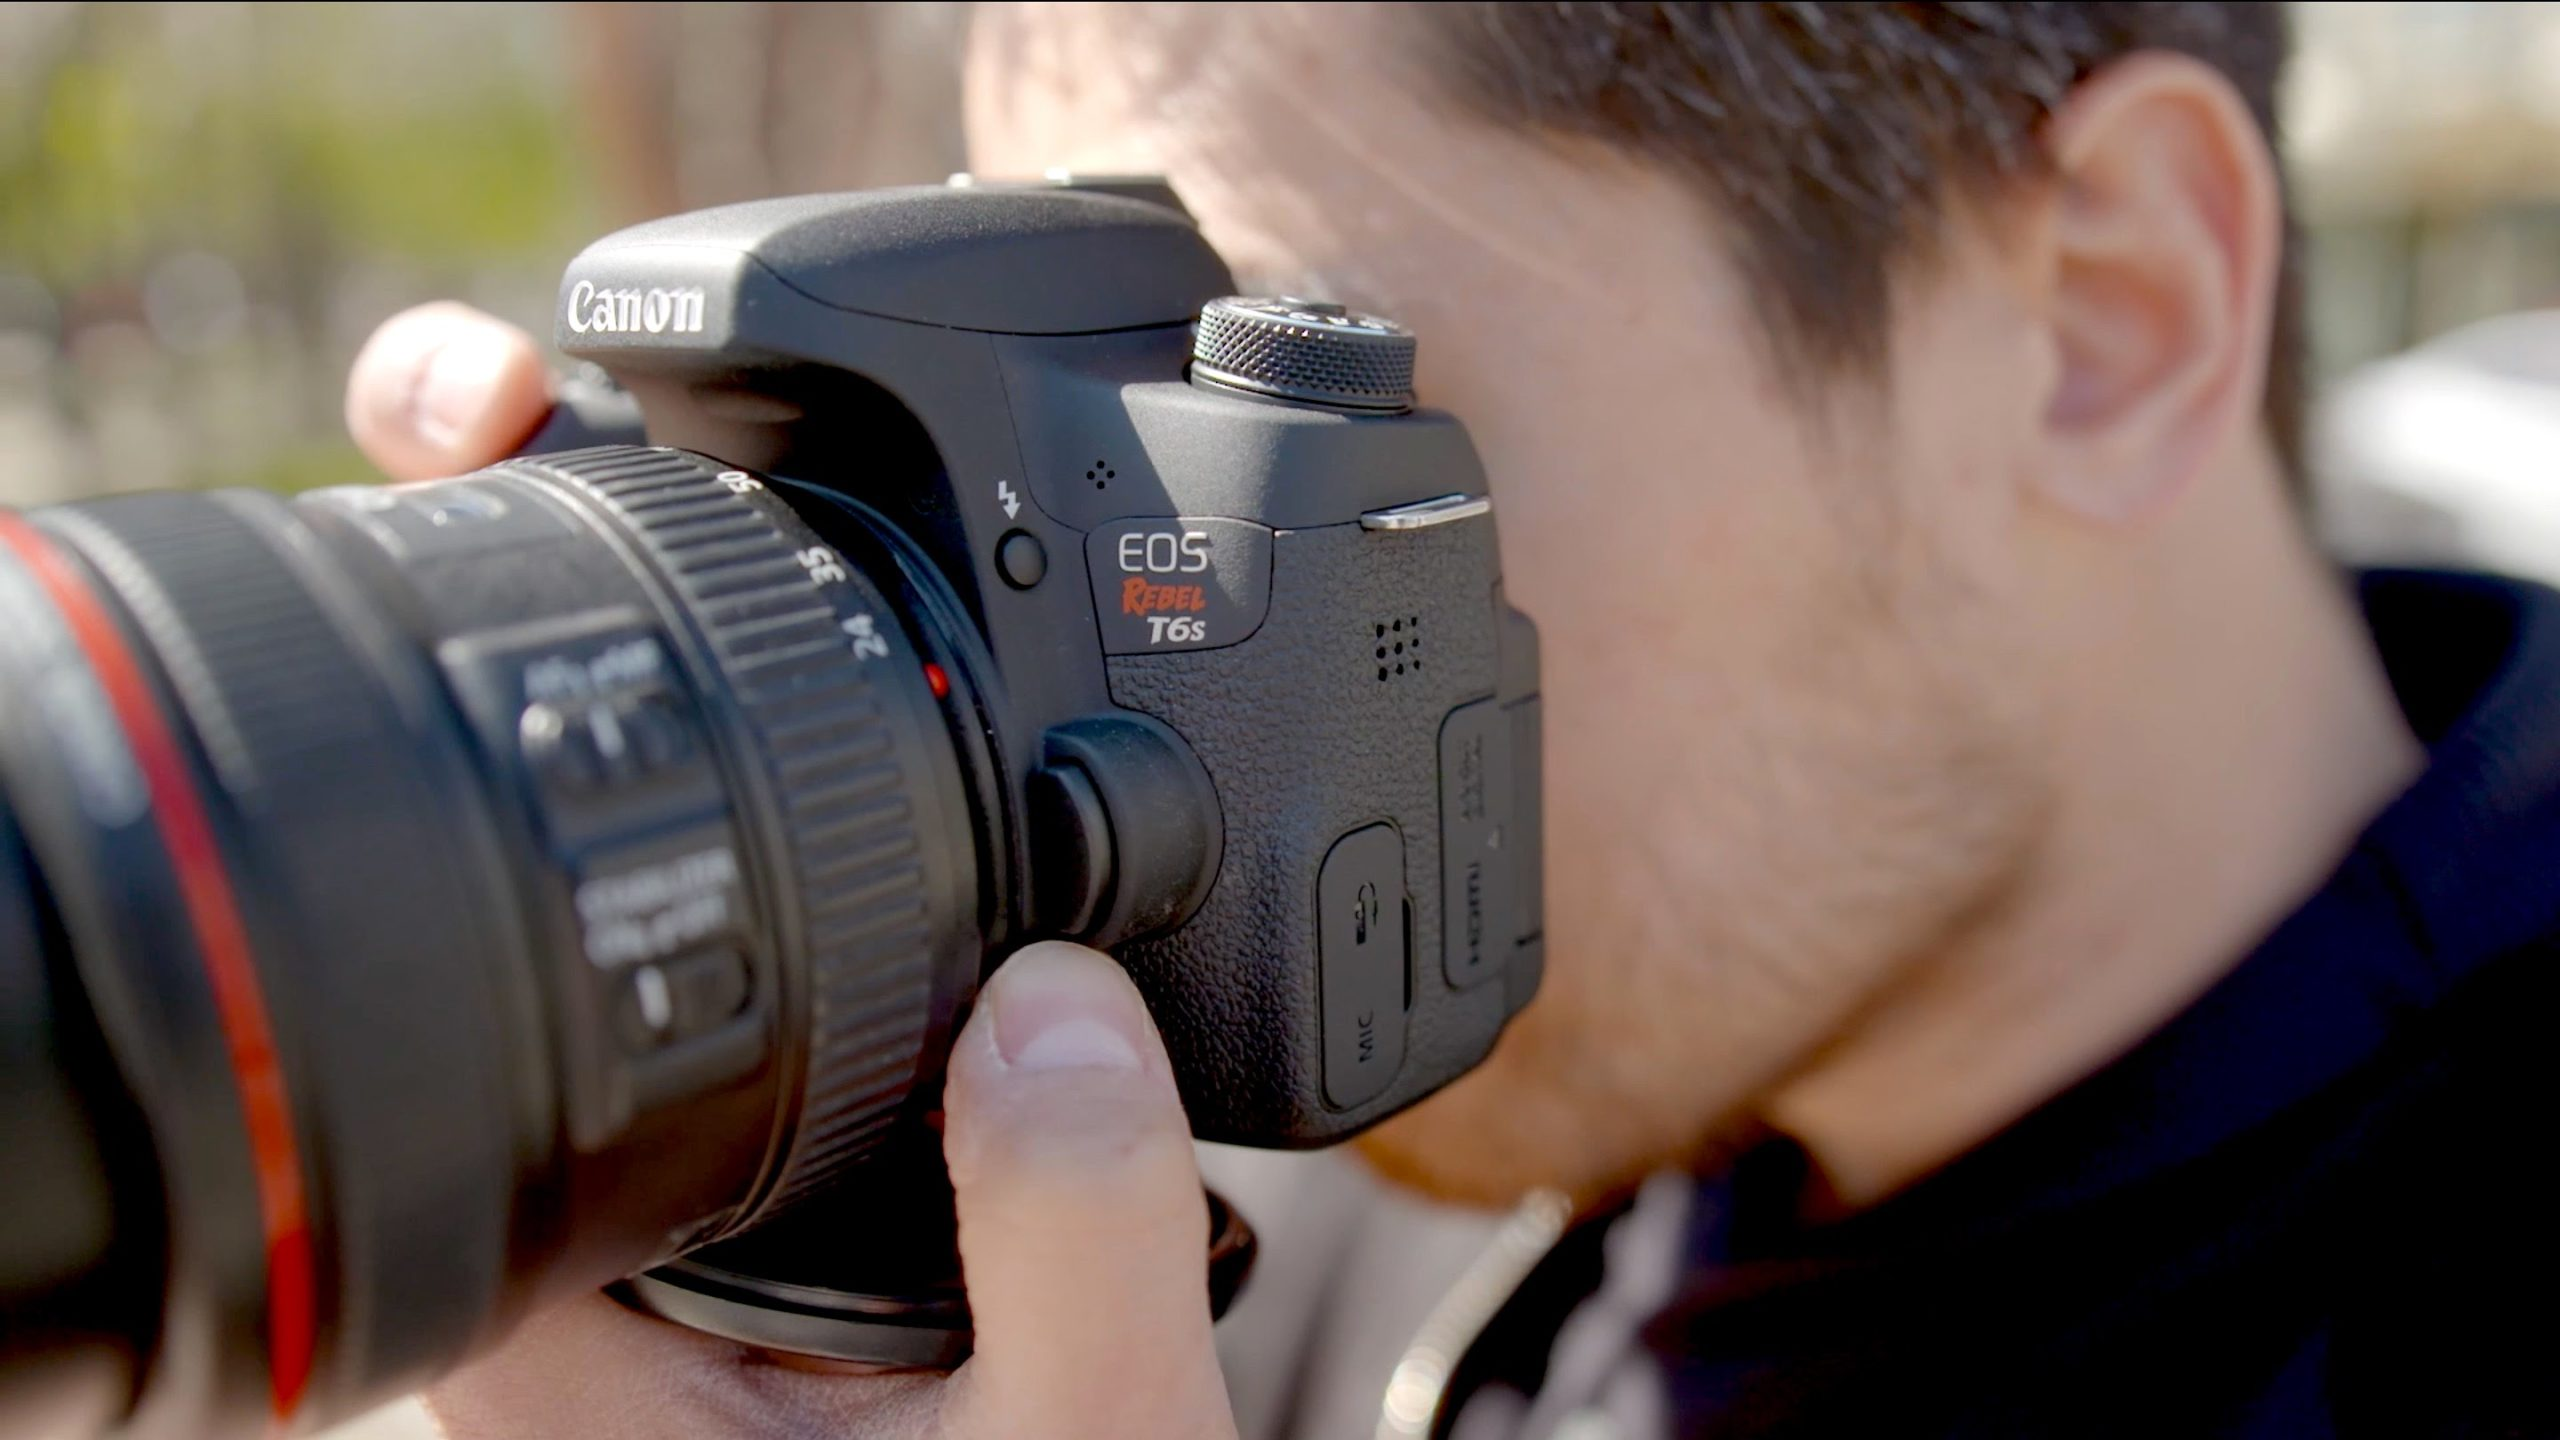 Canon Rebel T6i & T6S (750D & 760D) Hands-On and the Sensor Issue